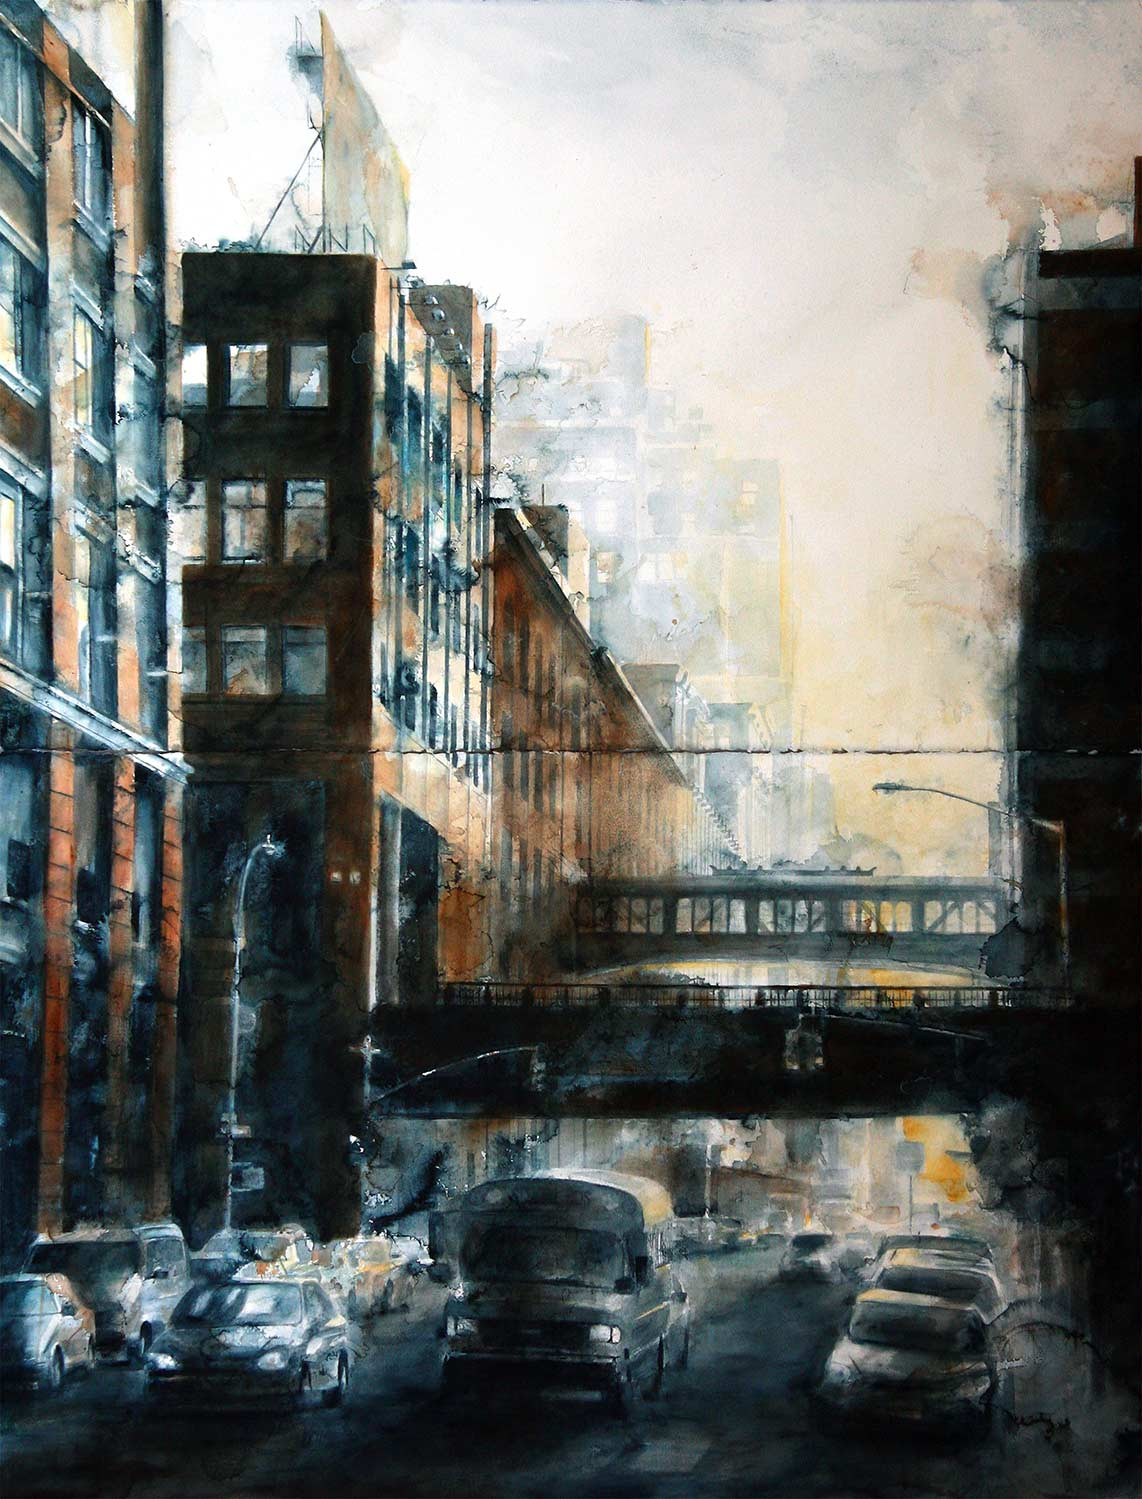 West 15th Street, morning (Diptych)